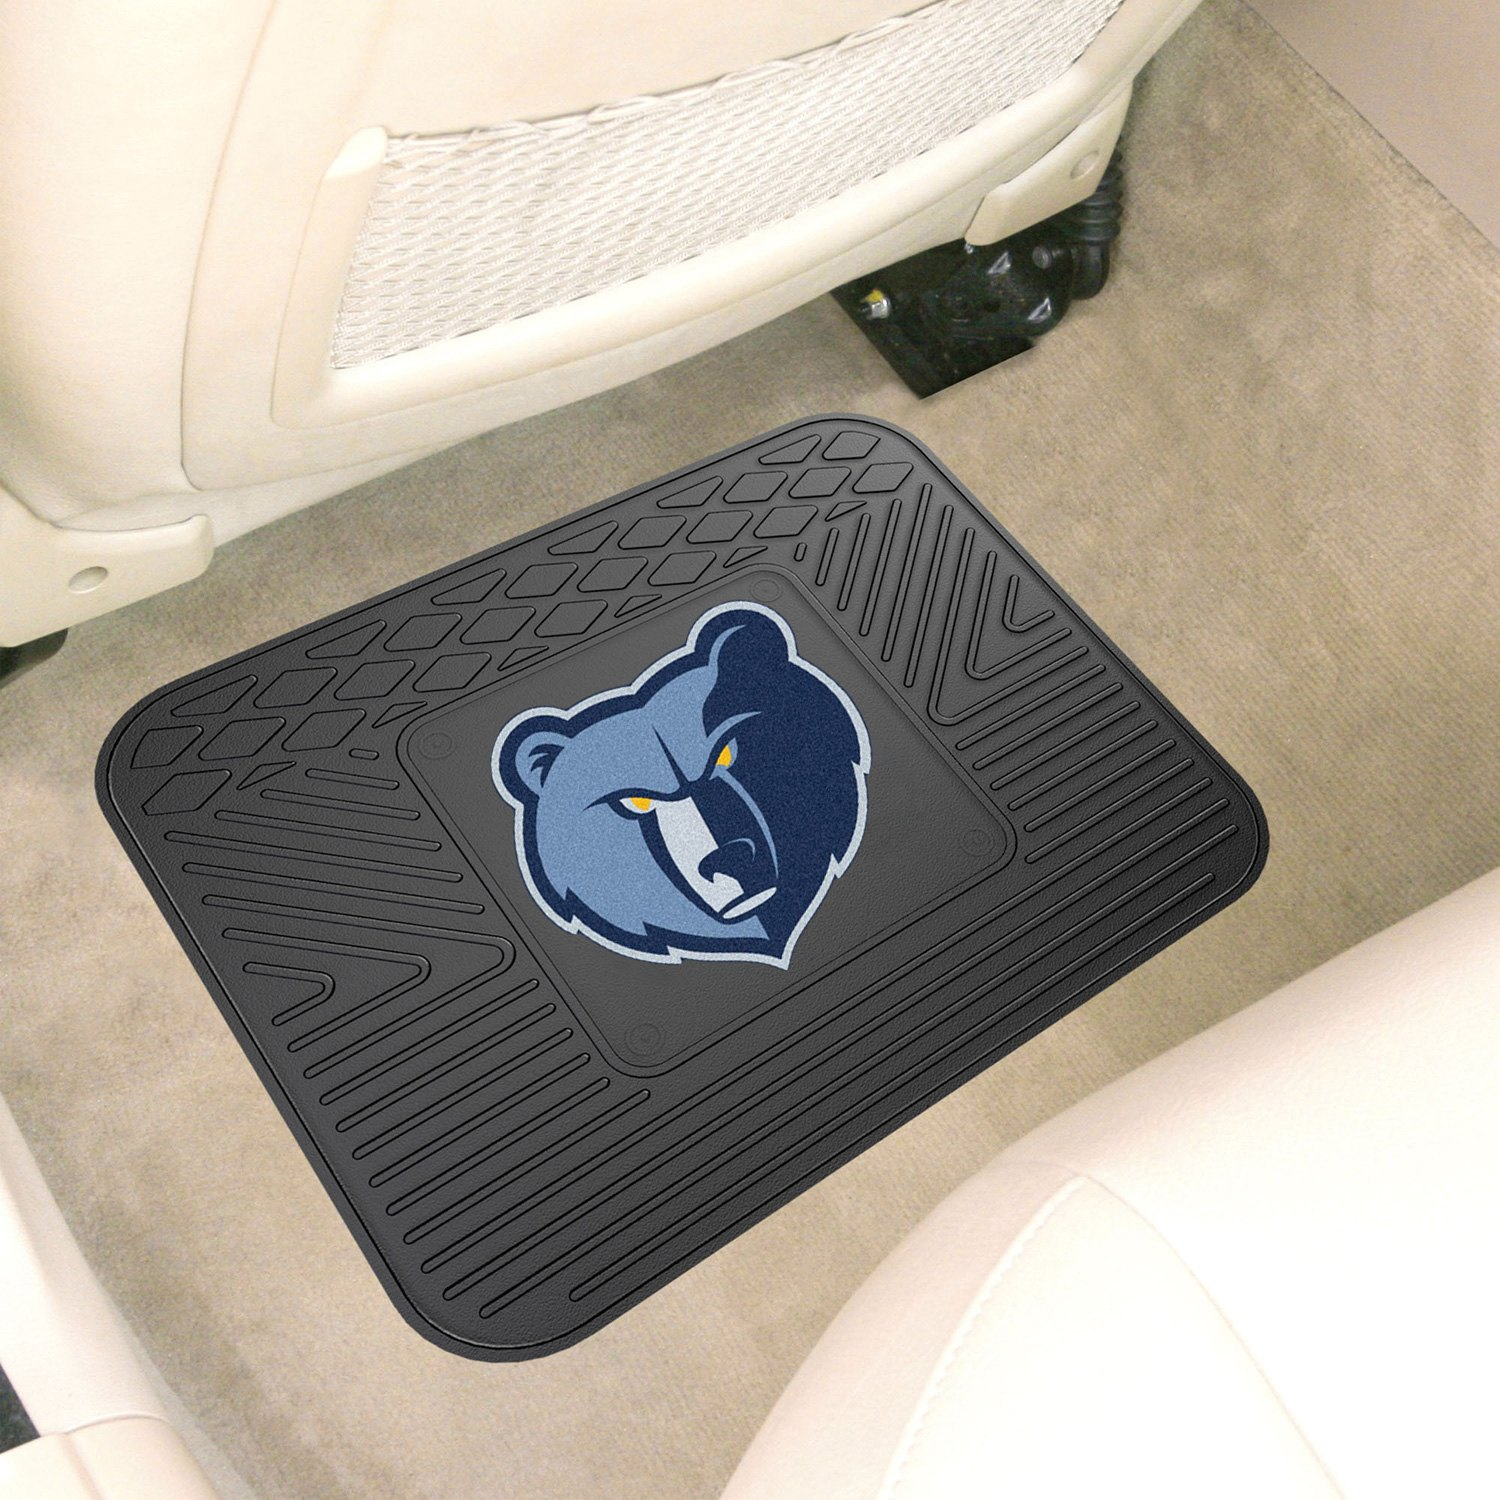 Fanmats 174 10016 2nd Row Heavy Duty Vinyl Car Mat With